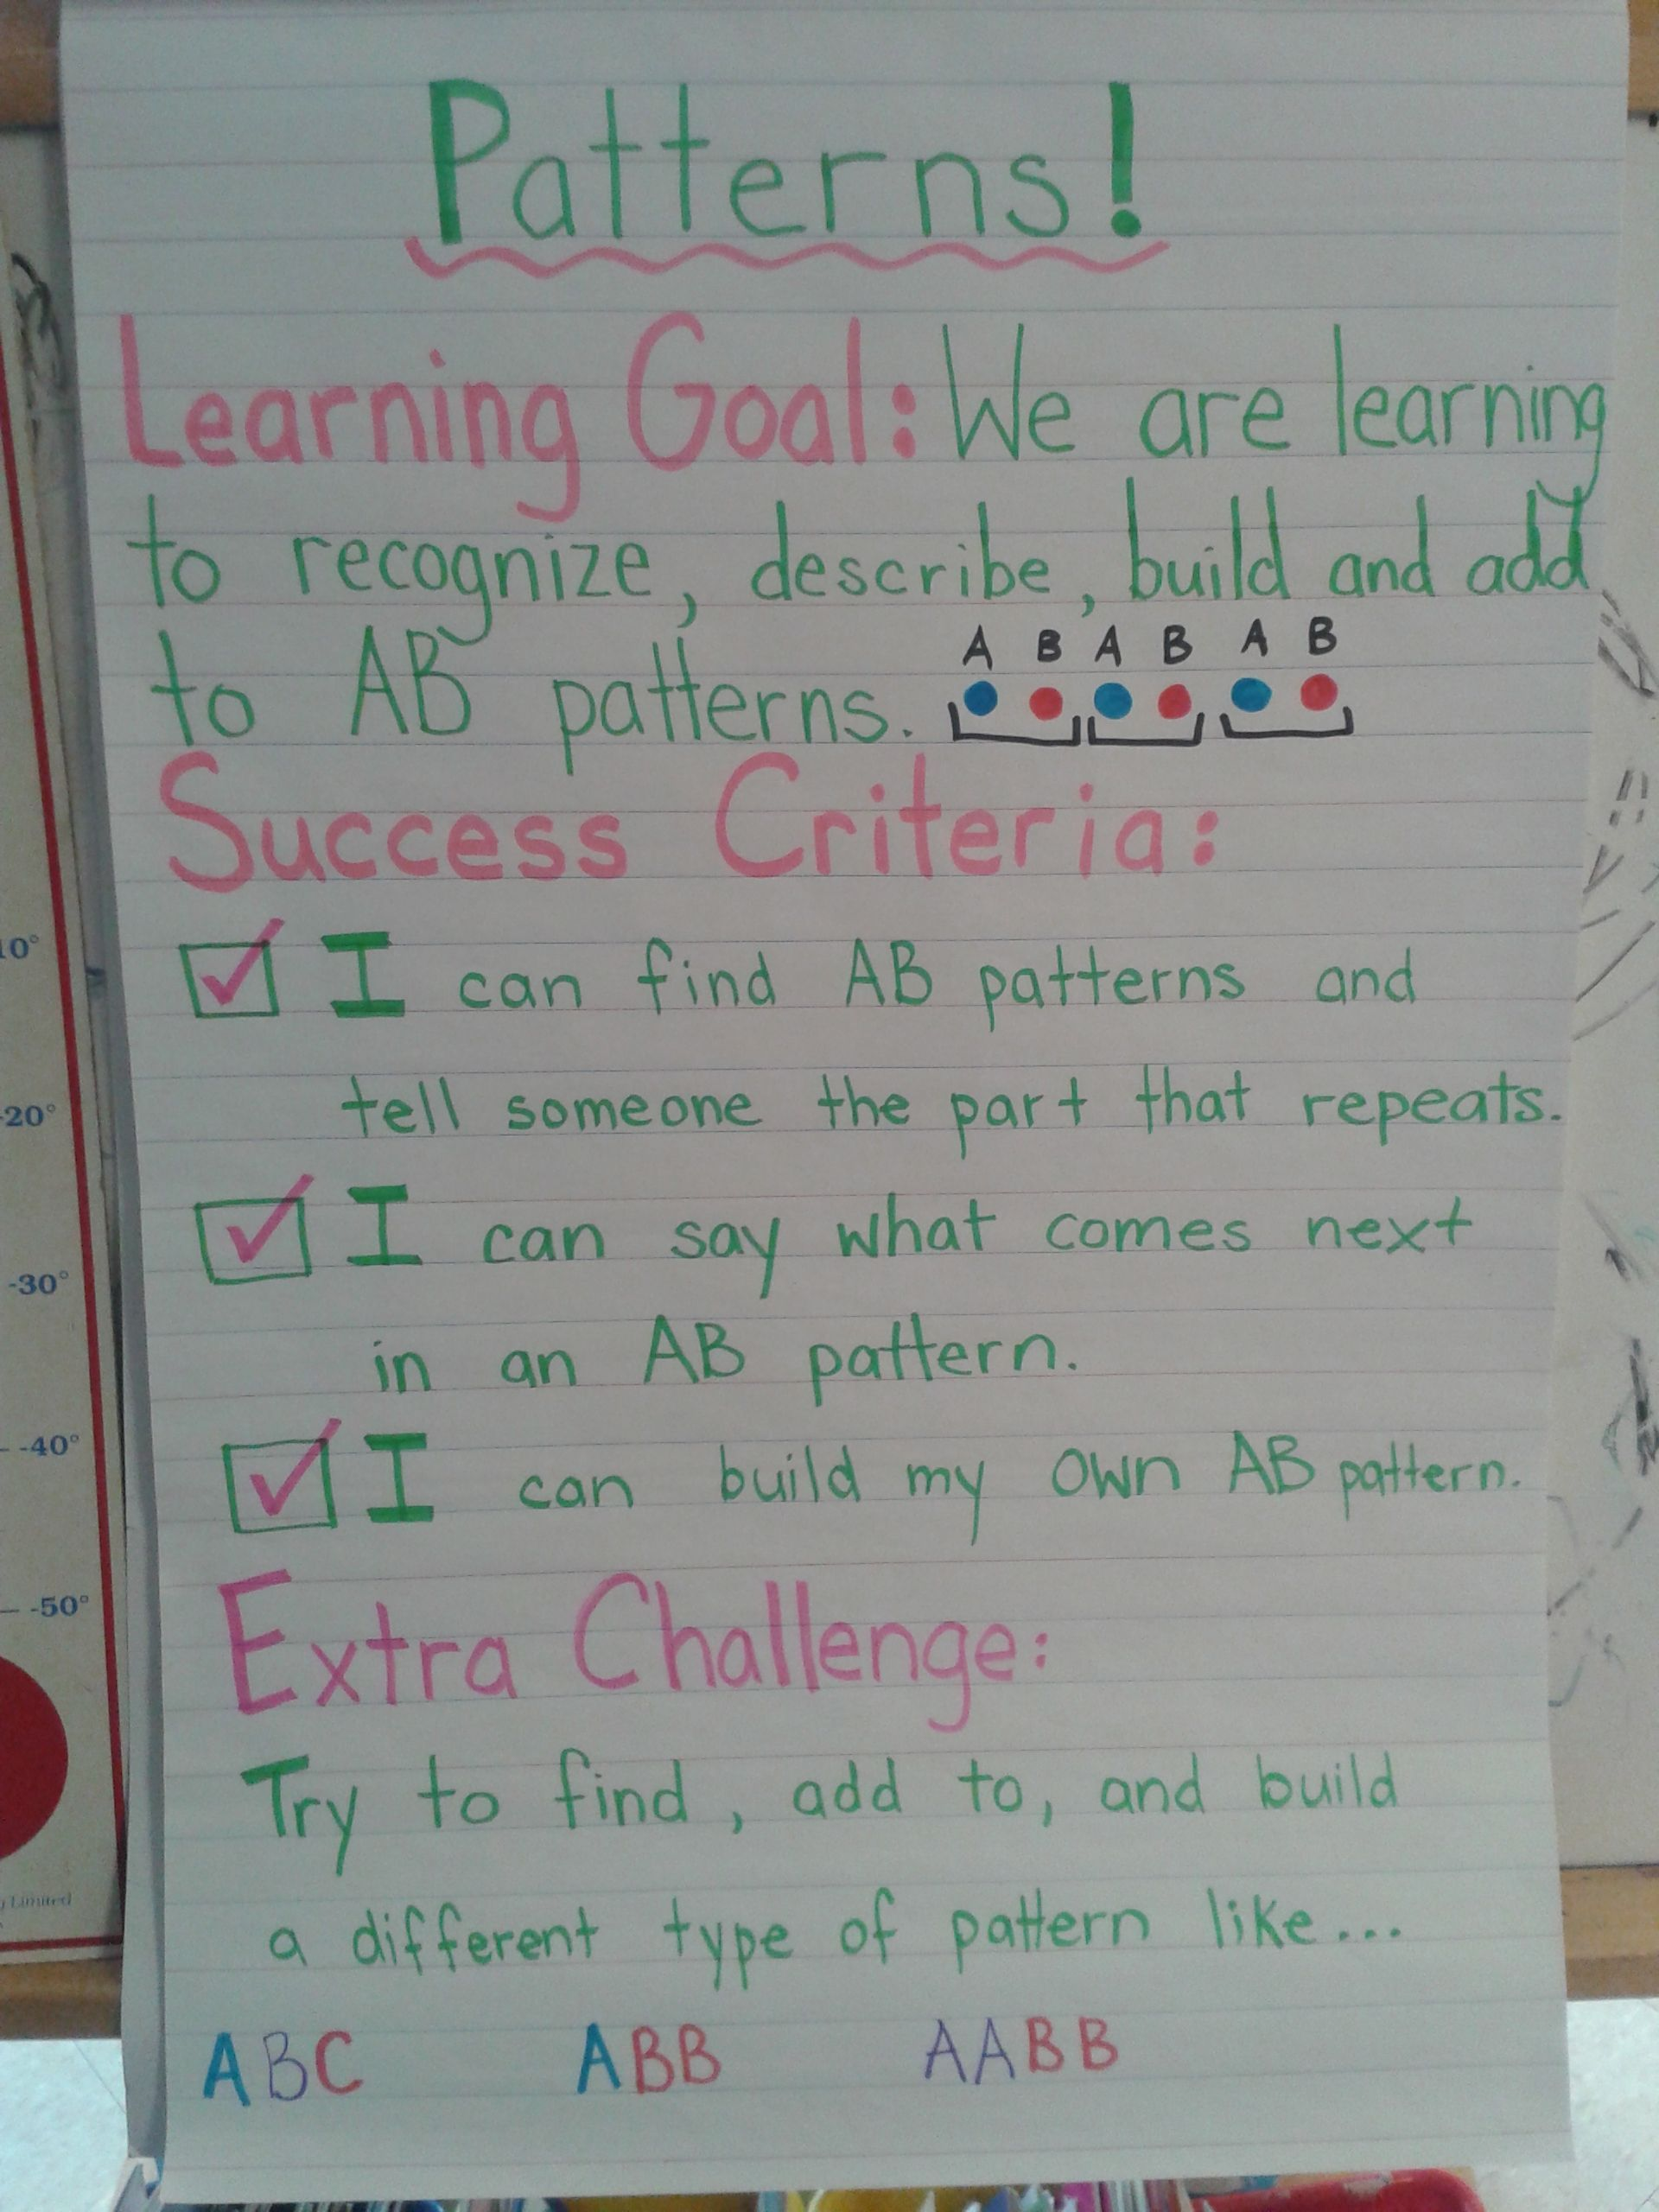 Patterning Learning Goals And Success Criteria For Kindergarten Ab Patterns Learning Goals Math Patterns Visible Learning [ 2560 x 1920 Pixel ]